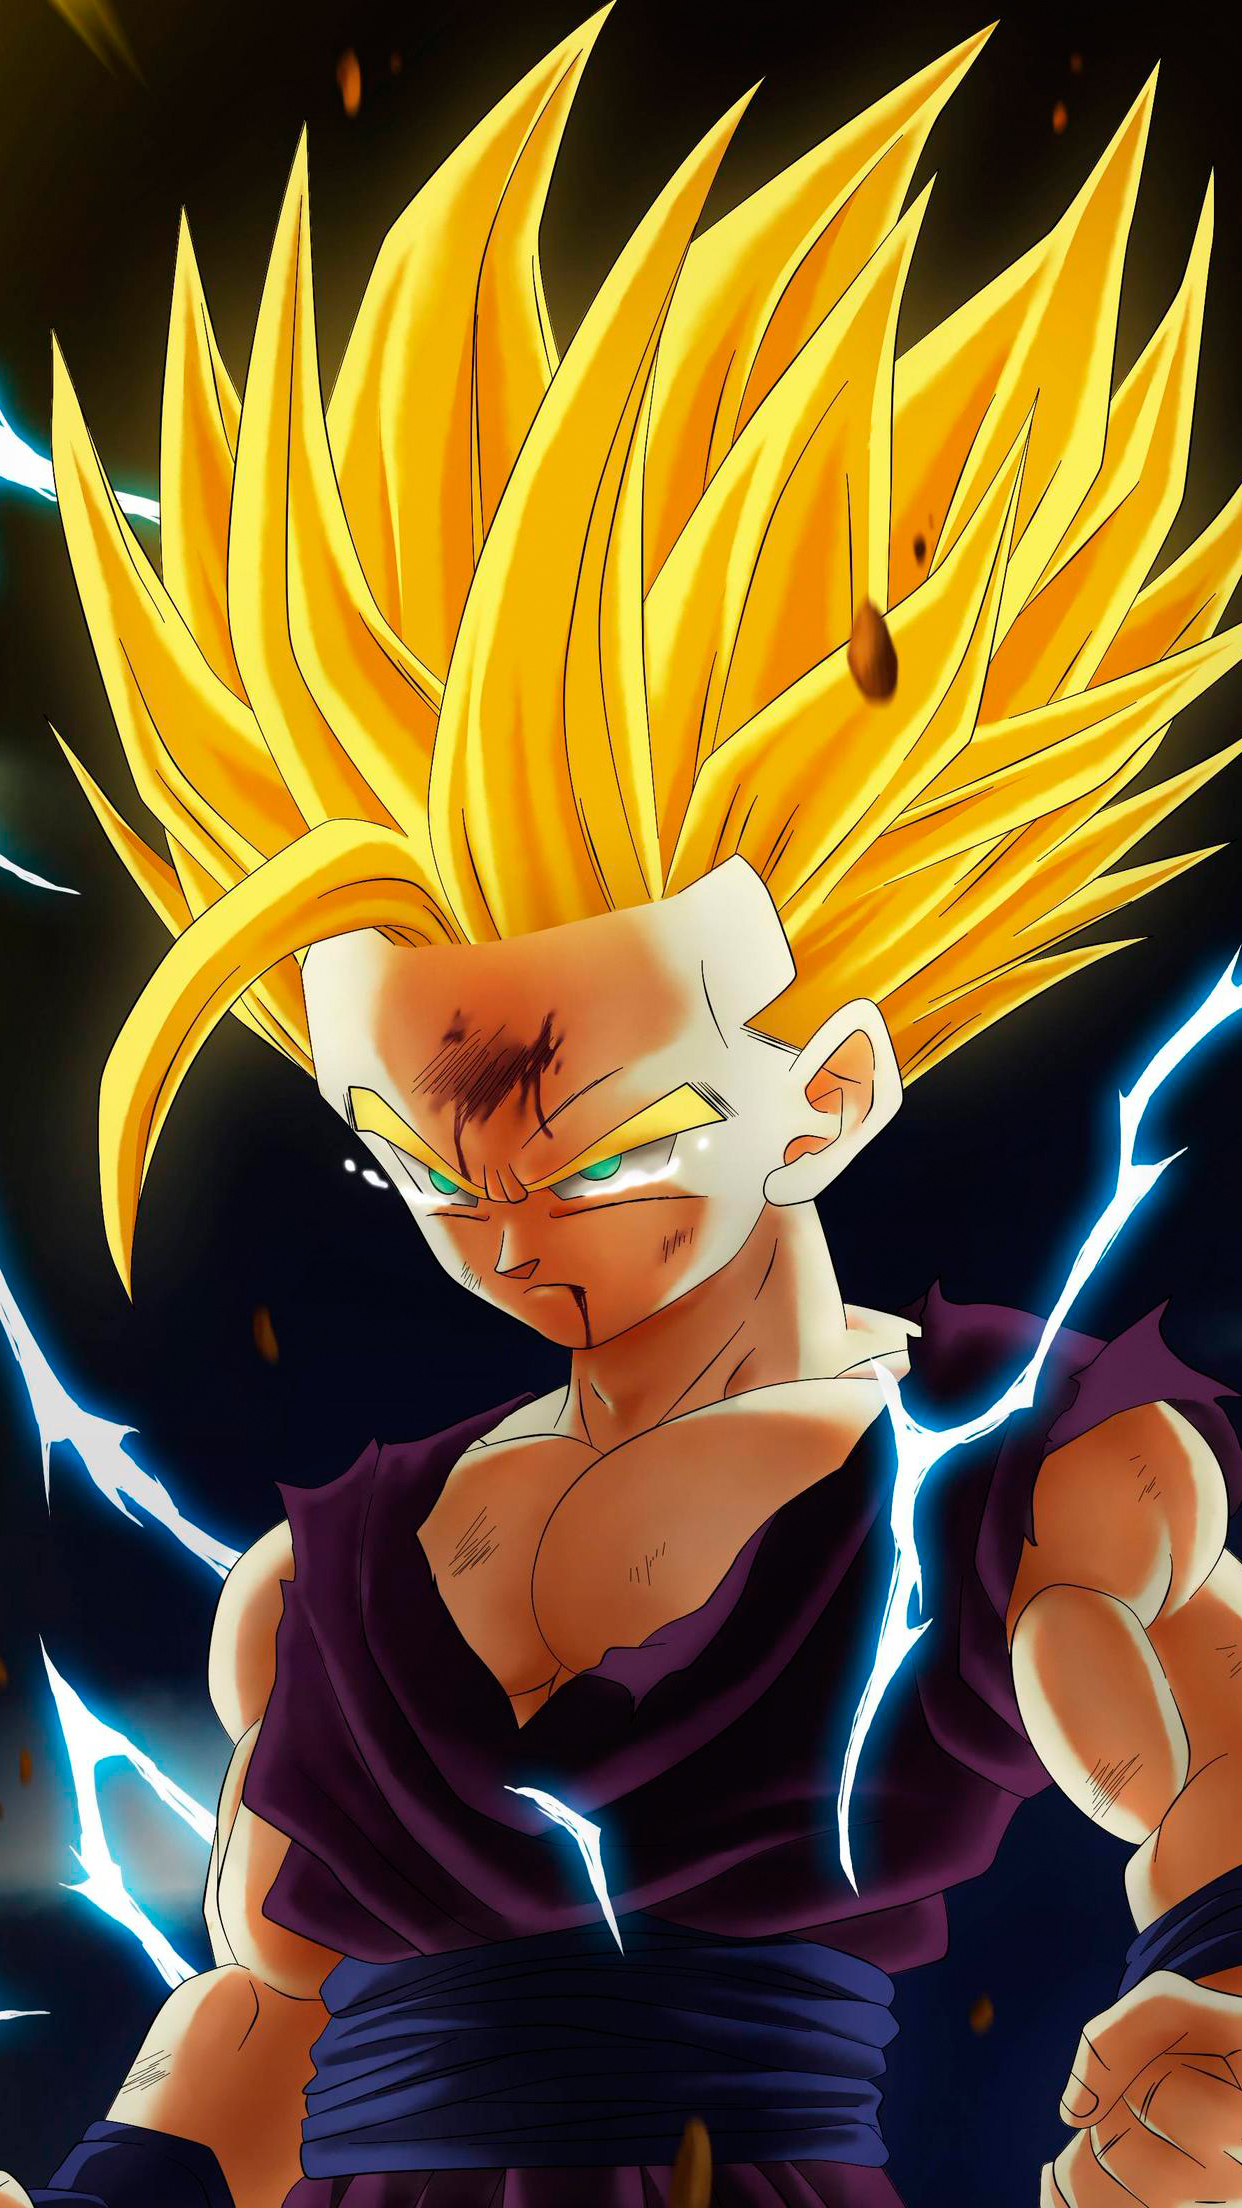 Dragon ball gohan wallpaper for iphone x 8 7 6 free for Fond ecran dbz